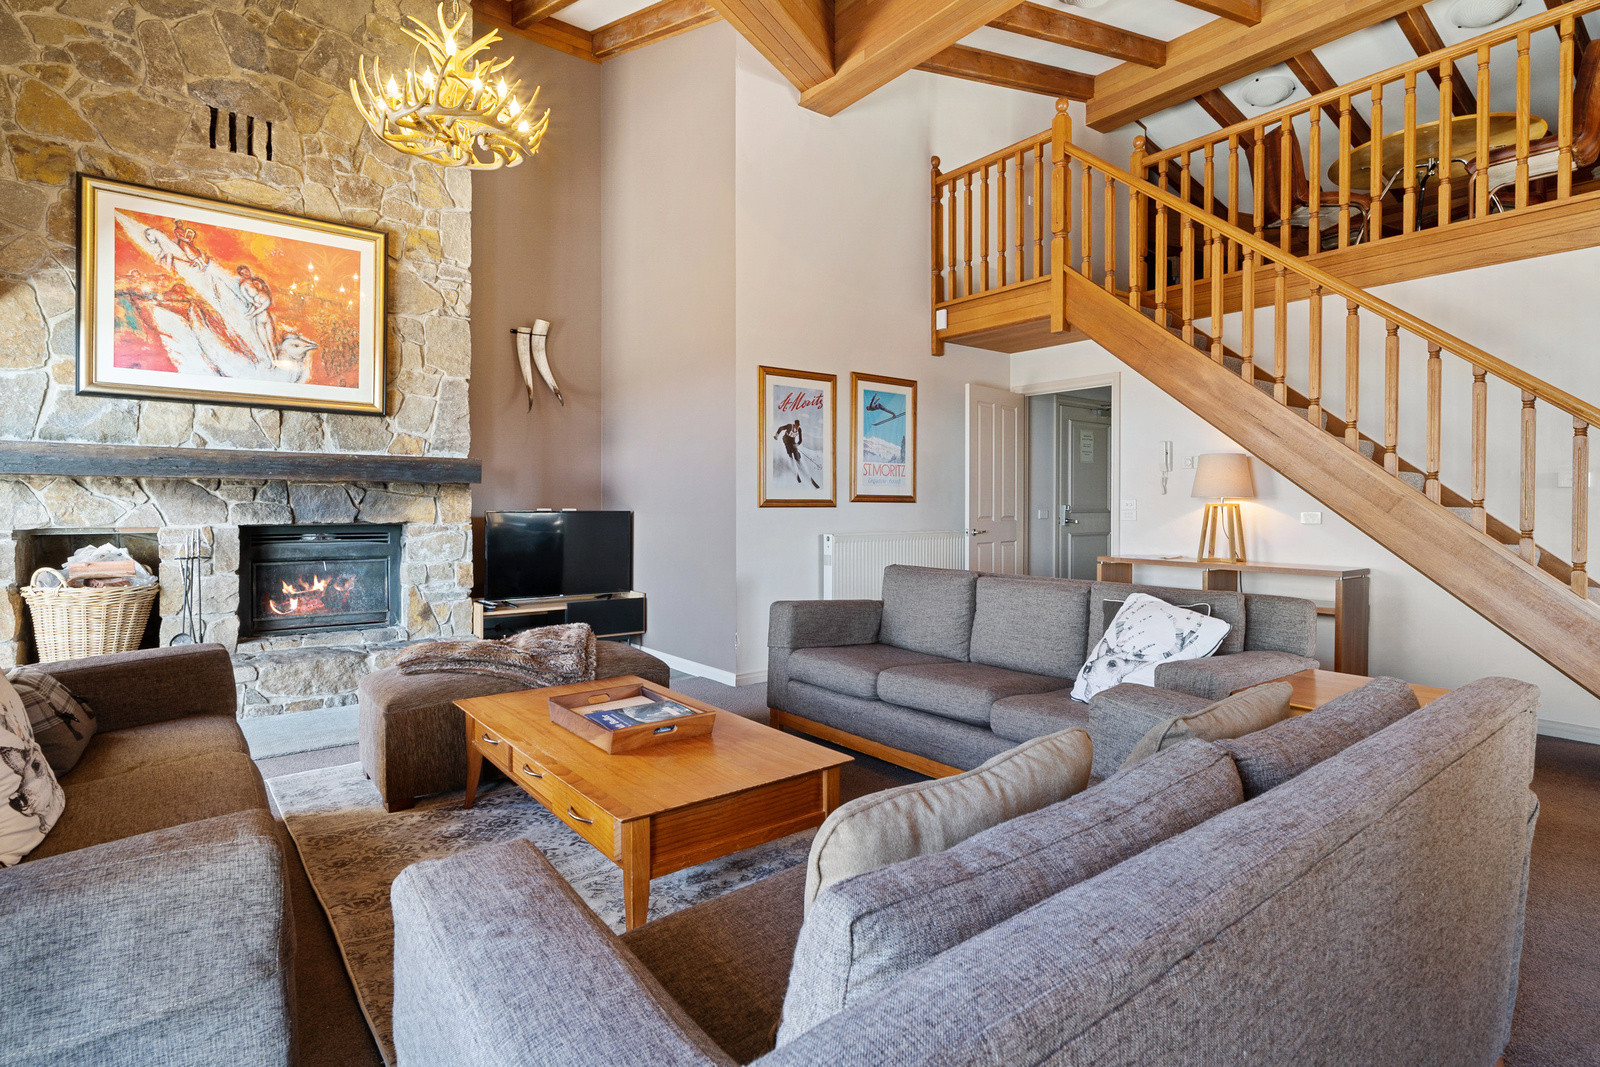 003_Open2view_ID632124-St_Moritz_pension